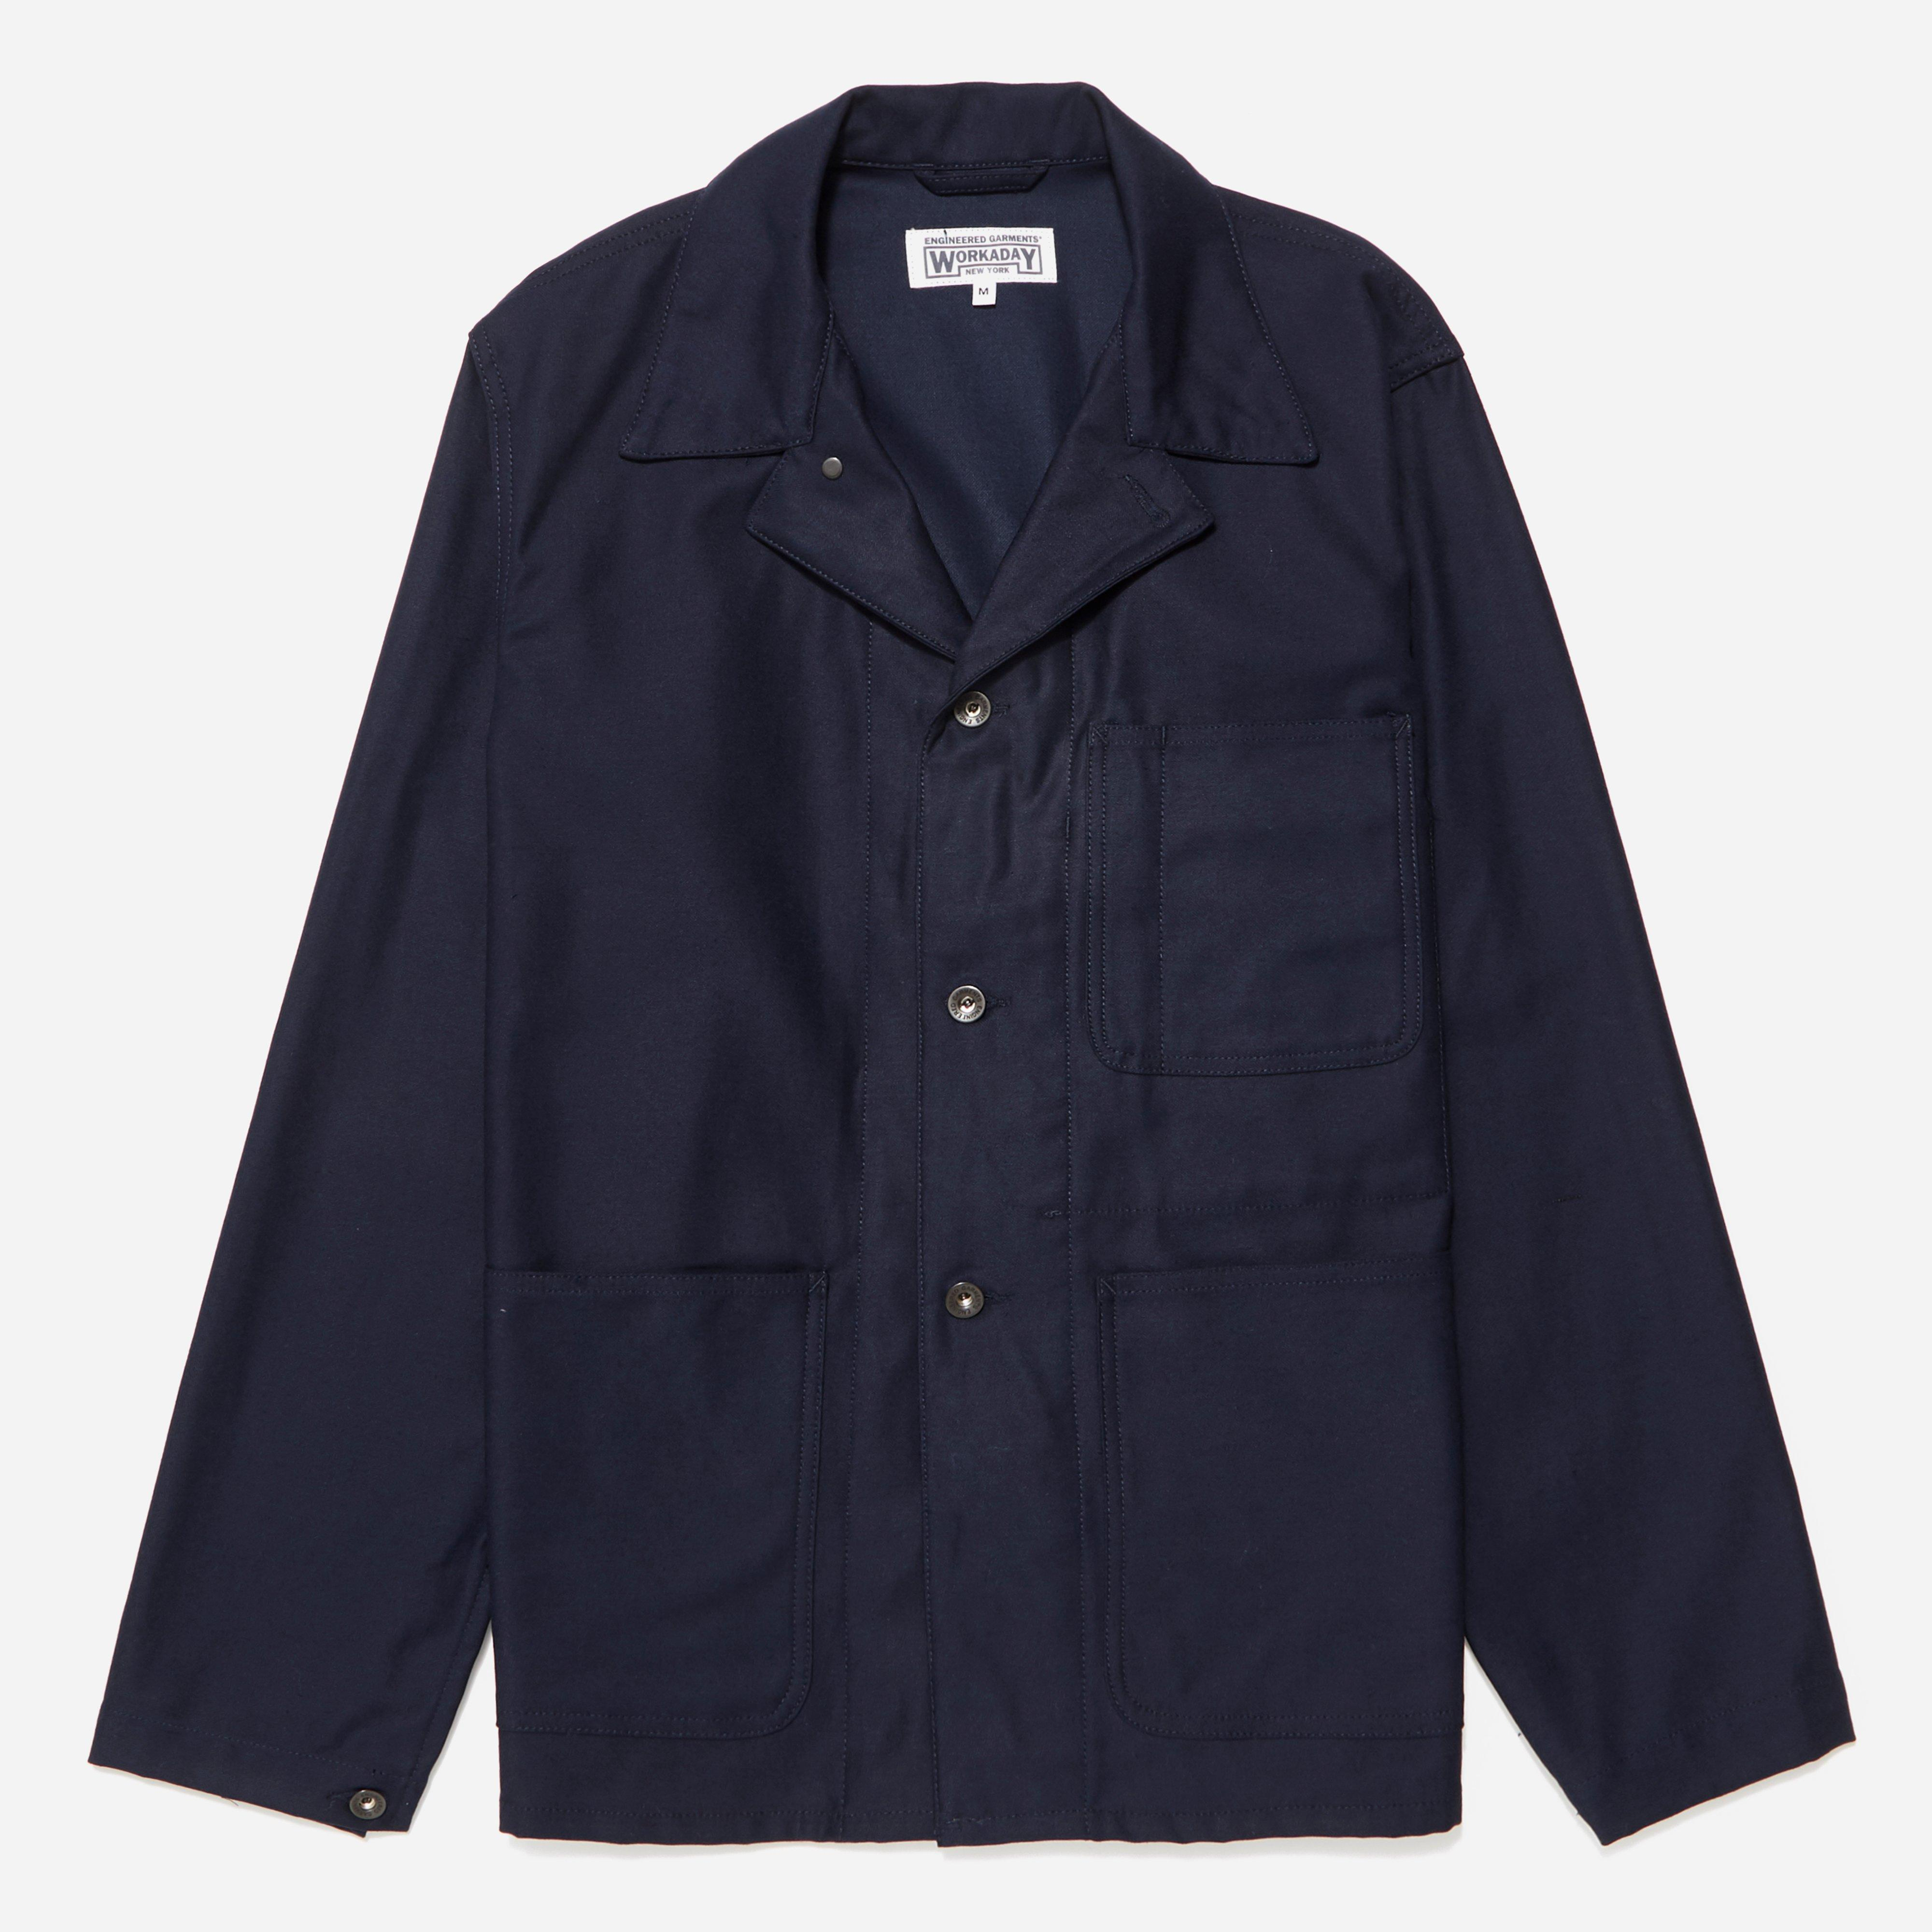 Engineered Garments Workaday Cotton Reversed Sateen Utility Jacket